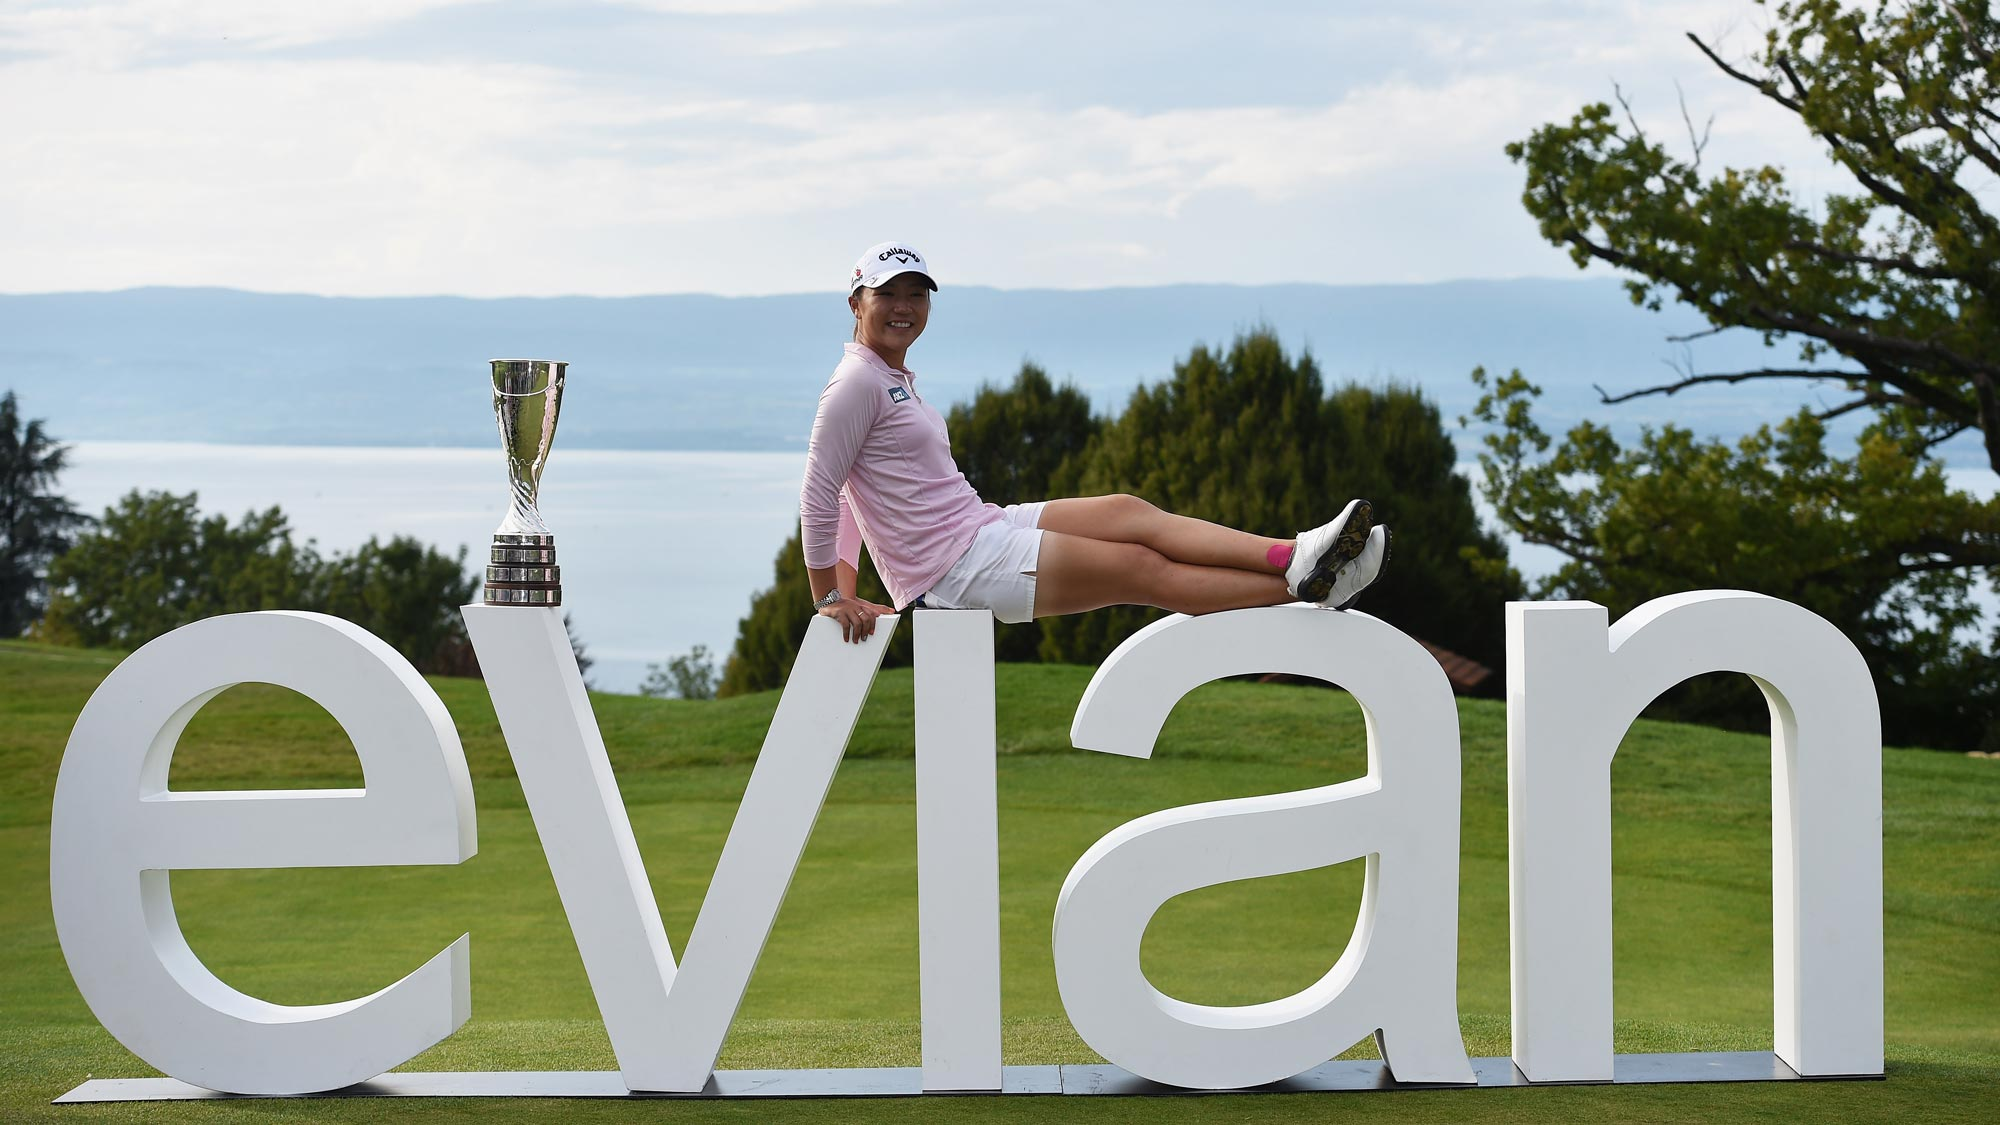 Lydia Ko poses with the giant Evian sign and her new Evian Championship Trophy after winning her first career major